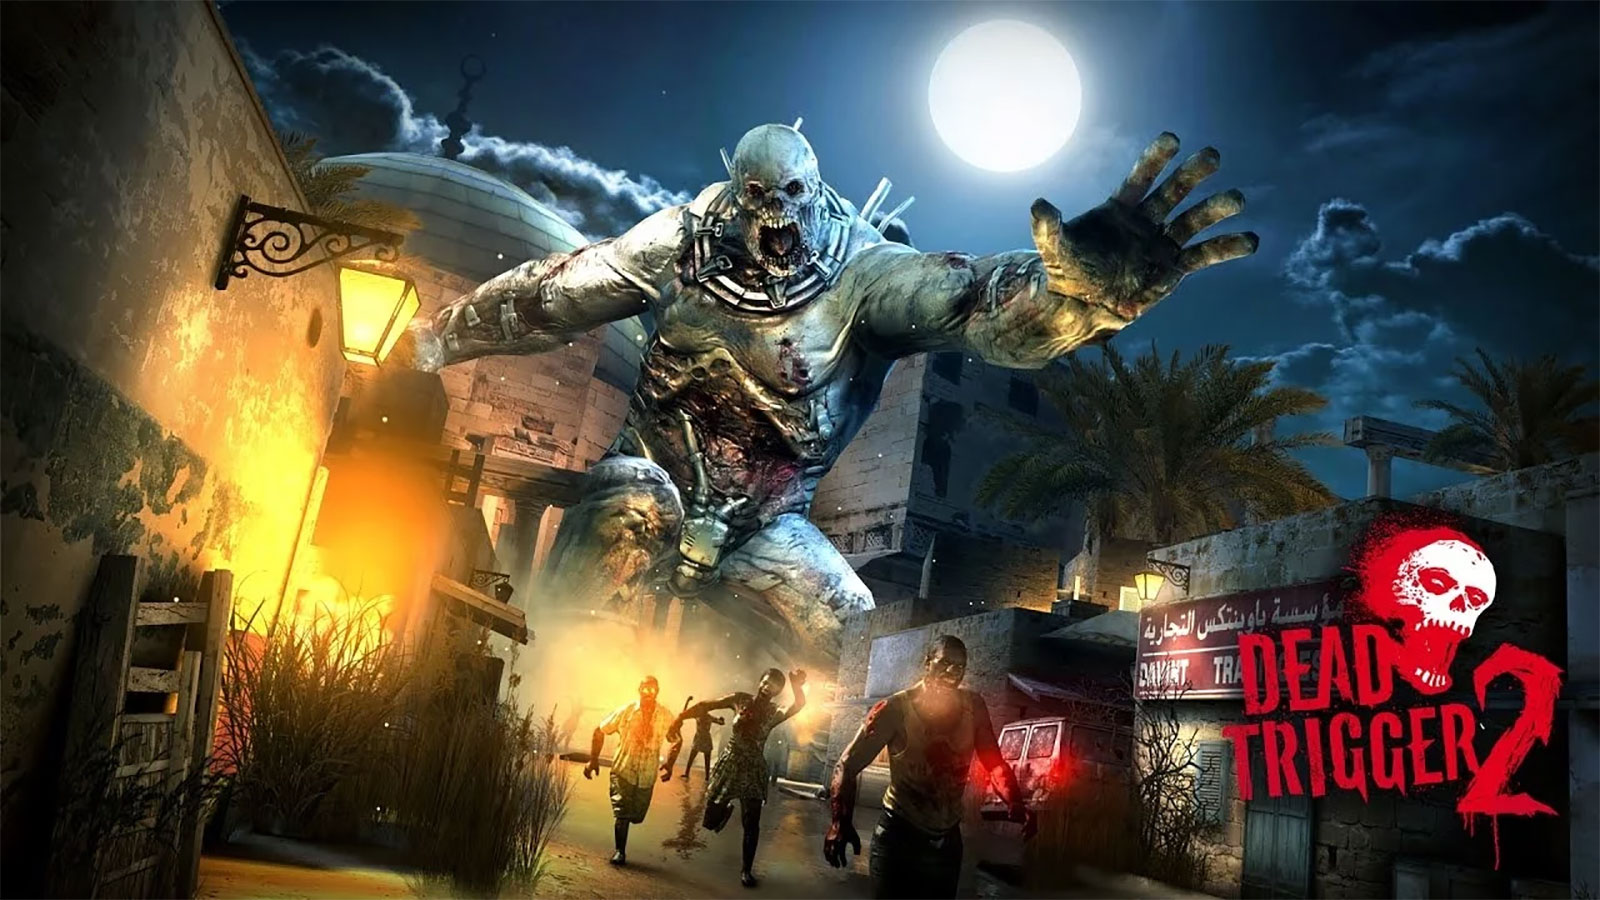 Download Dead Trigger 2 Mod Apk 1 6 2 Unlimited Ammo For Android